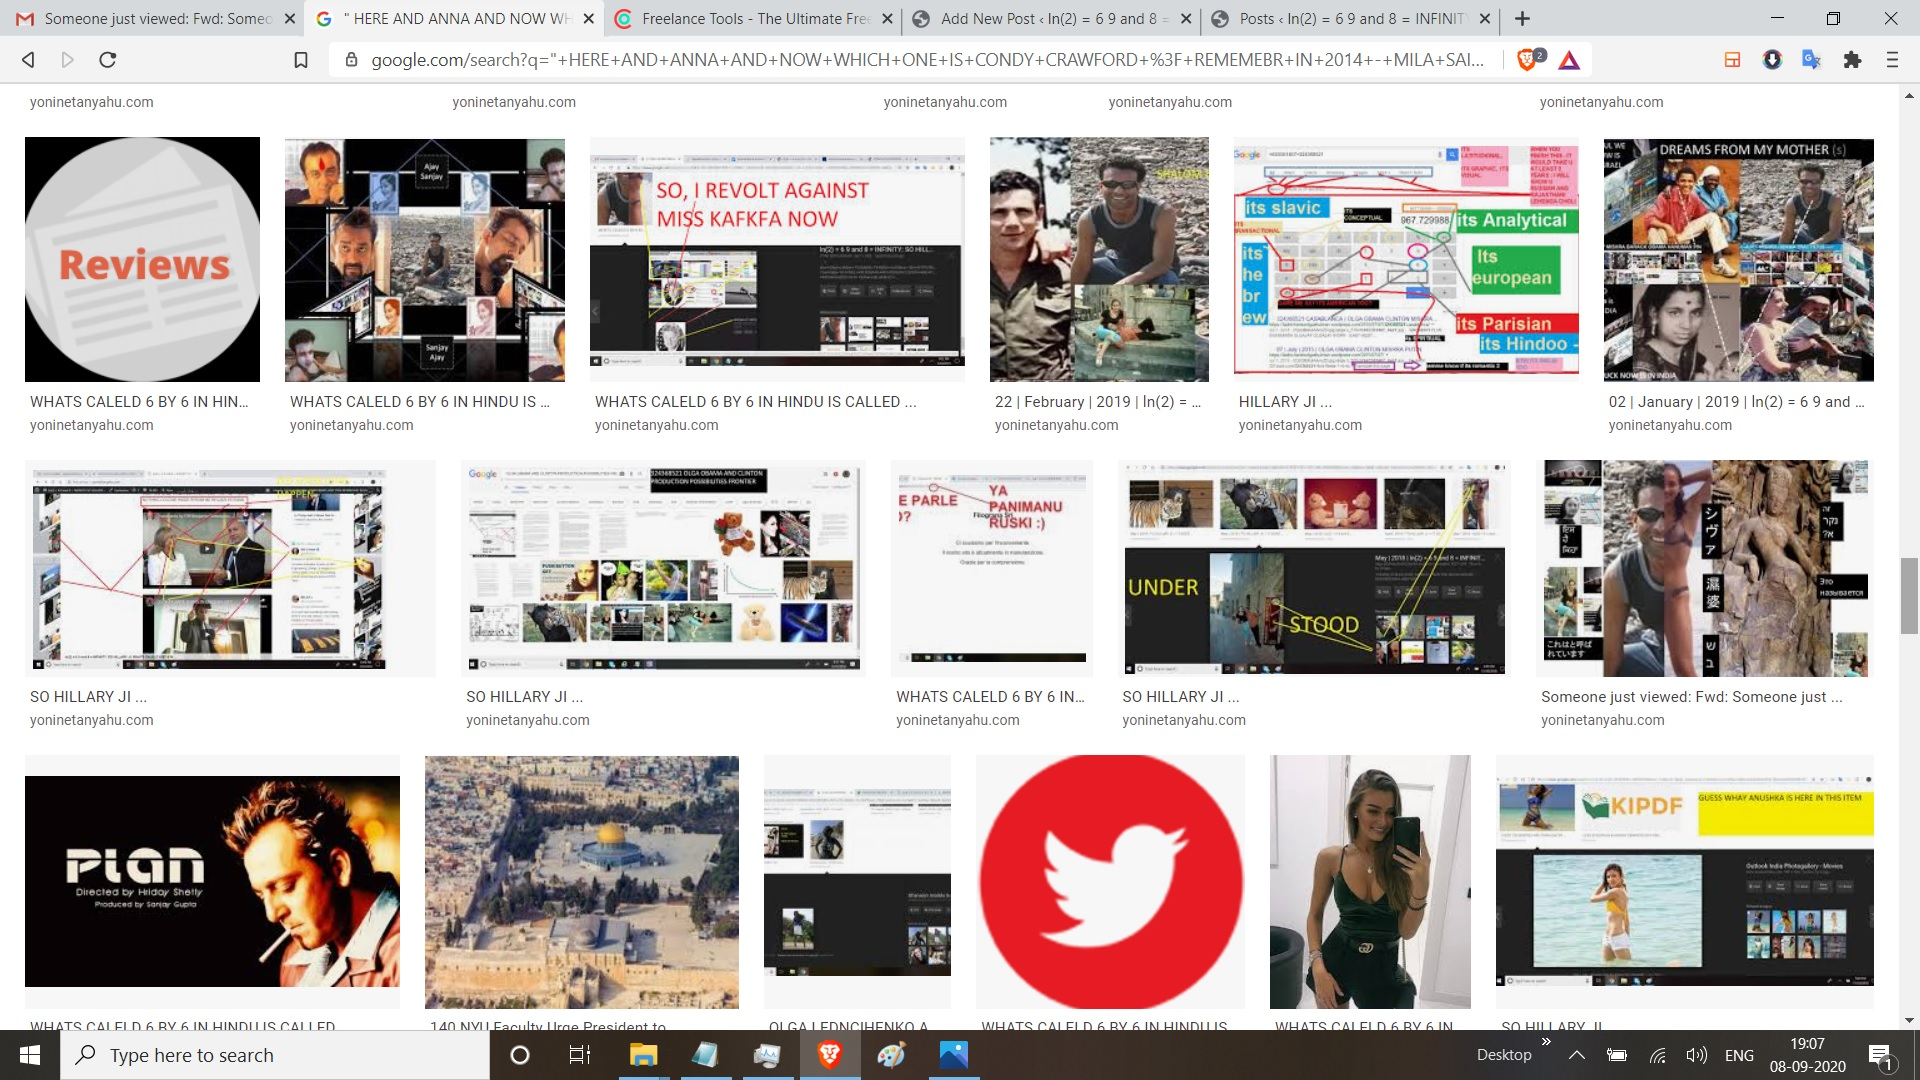 """"""" HERE AND ANNA AND NOW WHICH ONE IS CONDY CRAWFORD ? REMEMEBR IN 2014 - MILA SAID ON THE BLOG SOMETHING ? - IS BILL CLINTON AND BARACK OBAMA THERE -> THE LIP JOB AND THE CINDY CRAWFORD -? WITH LOVE FROM RUSSIA AND INDIA - ... GOT IT ? - YOUR WECPOOME Inbox x YONI NETANYAHU x Streak 11:25 AM (3 hours ago) to me Someone just viewed your email with the subject: HERE AND ANNA AND NOW WHICH ONE IS CONDY CRAWFORD ? REMEMEBR IN 2014 - MILA SAID ON THE BLOG SOMETHING ? - IS BILL CLINTON AND BARACK OBAMA THERE -> THE LIP JOB AND THE CINDY CRAWFORD -? WITH LOVE FROM RUSSIA AND INDIA - ... GOT IT ? - YOUR WECPOOME Details People on thread: YONI NETANYAHU OLGA BLOG POST BY EMAIL Device: PC Location: houston, tx Streak 2:57 PM (1 minute ago) to me Someone just viewed your email with the subject: HERE AND ANNA AND NOW WHICH ONE IS CONDY CRAWFORD ? REMEMEBR IN 2014 - MILA SAID ON THE BLOG SOMETHING ? - IS BIL L CLINTON AND BA"""""""